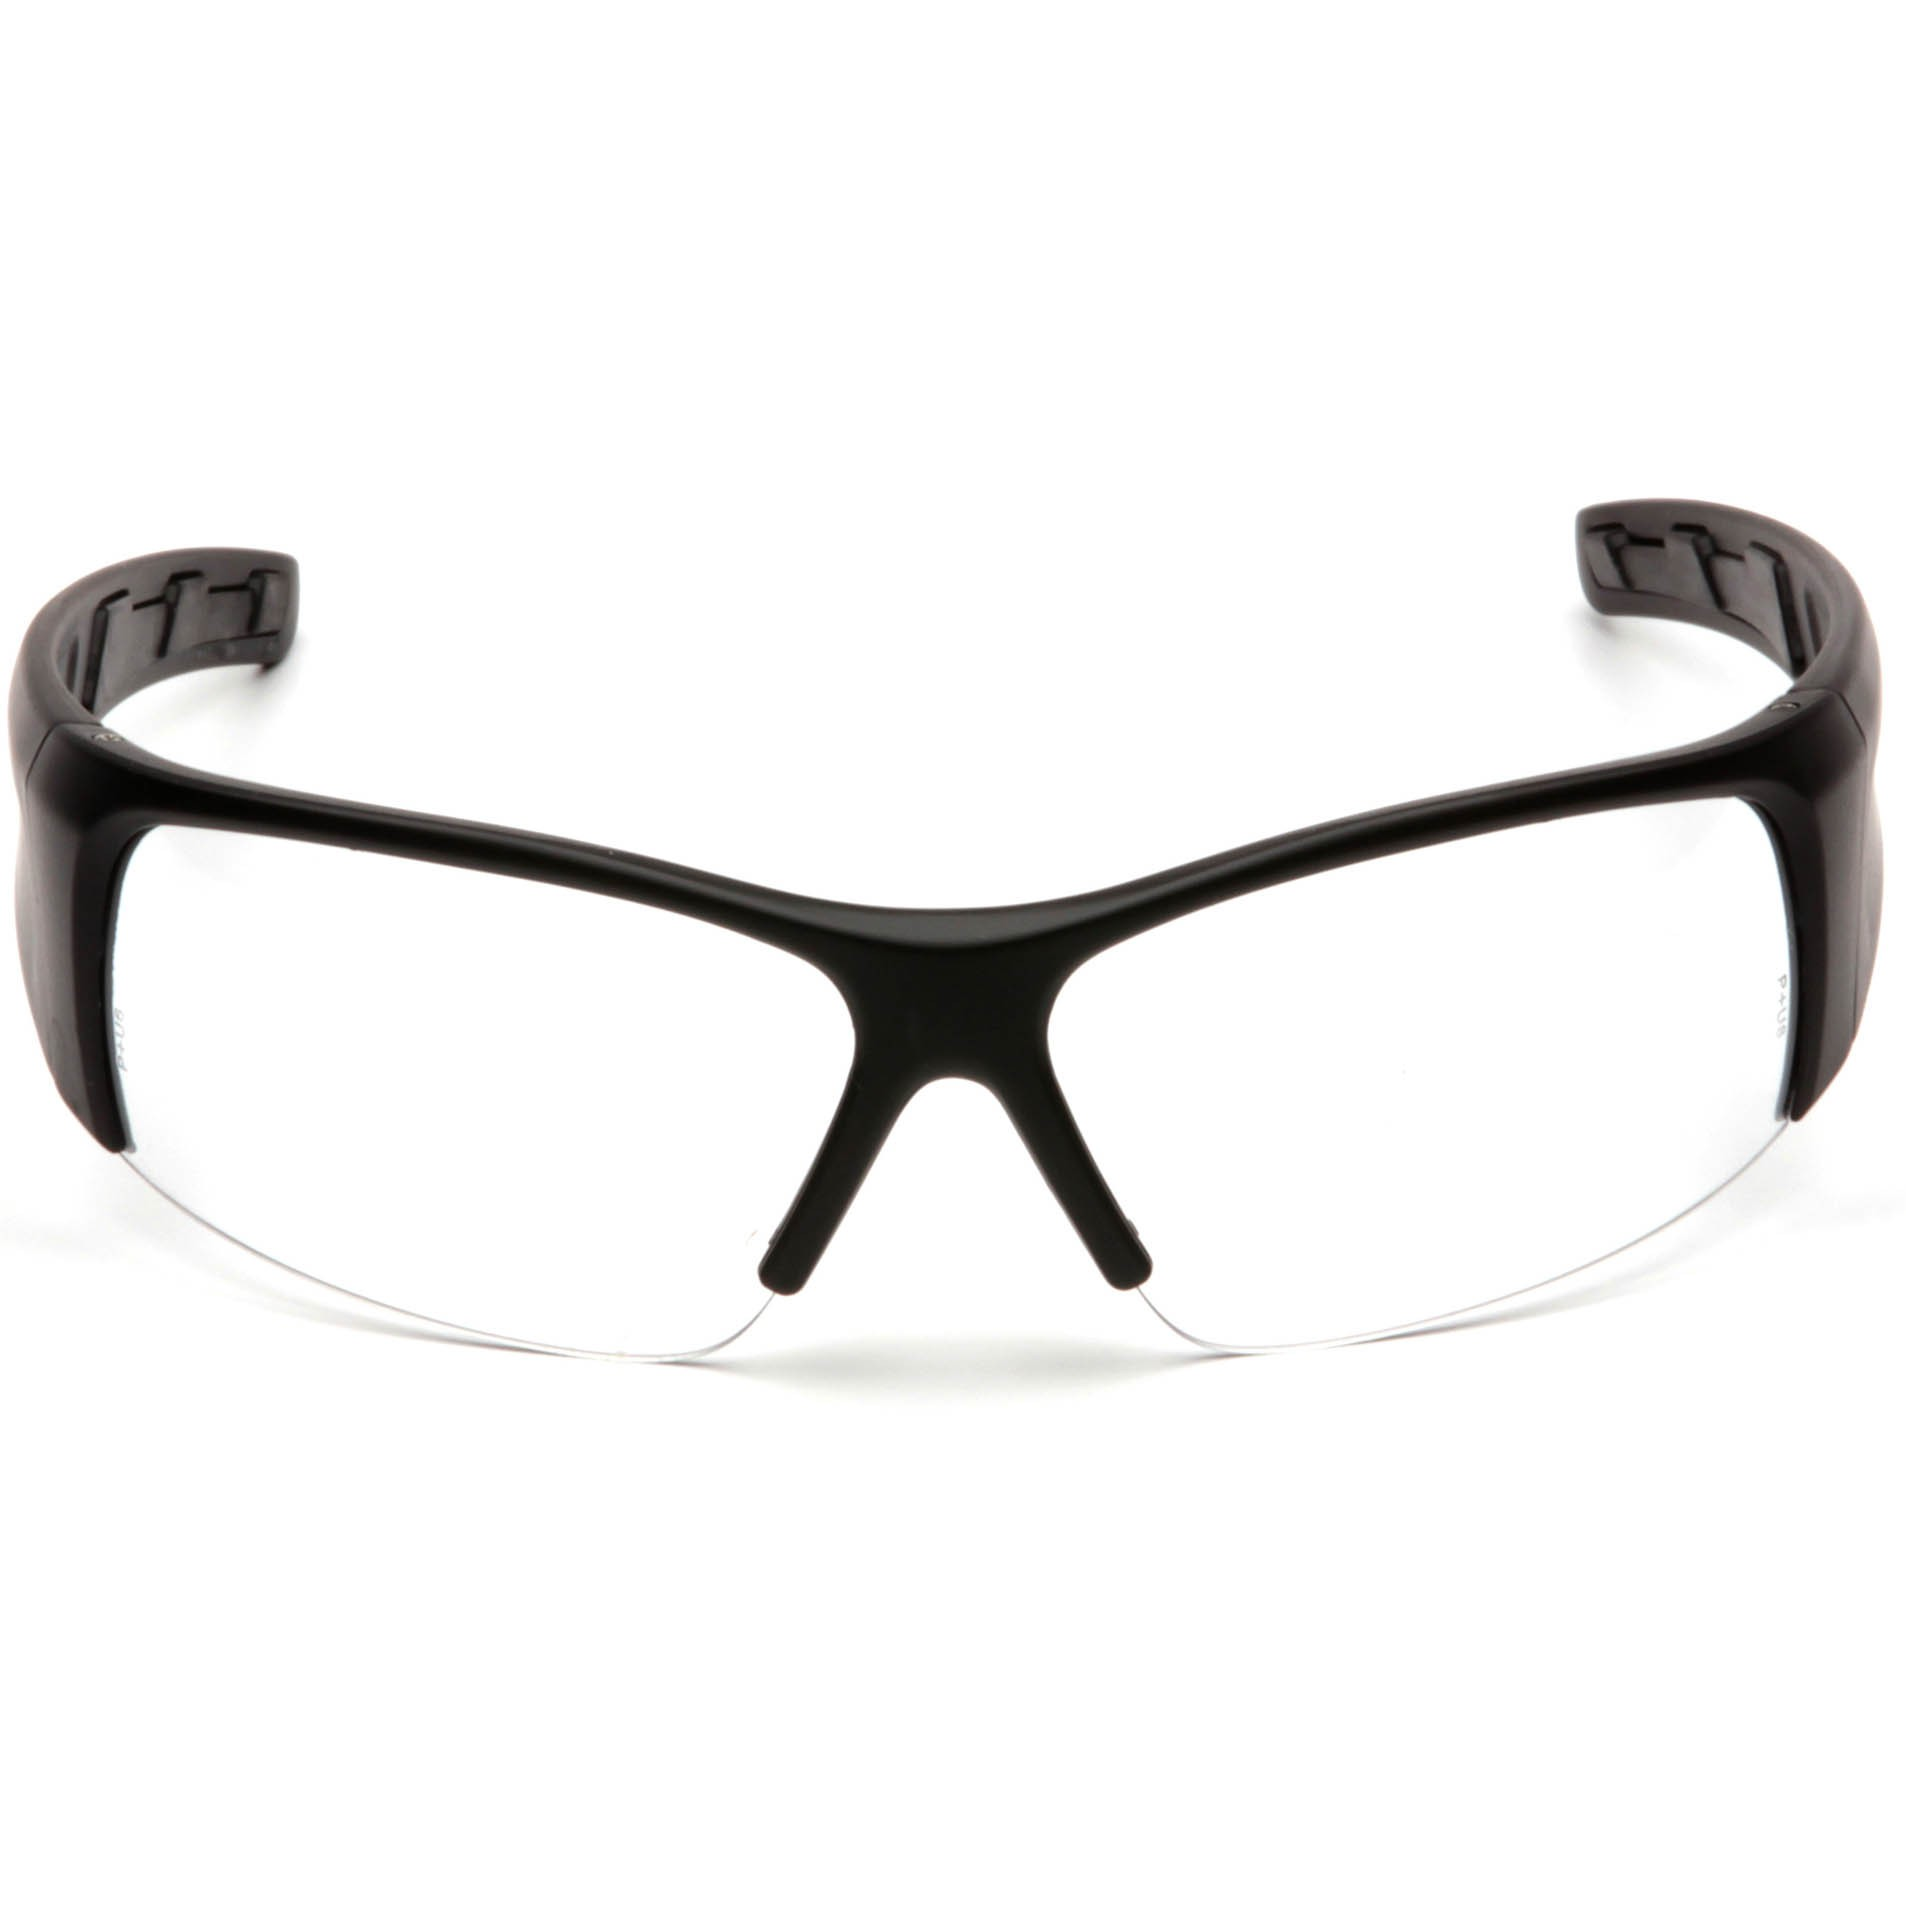 Black Frame Glasses Clear Lens : Pyramex PMXTORQ Safety Glasses - Black Frame - Clear Lens ...